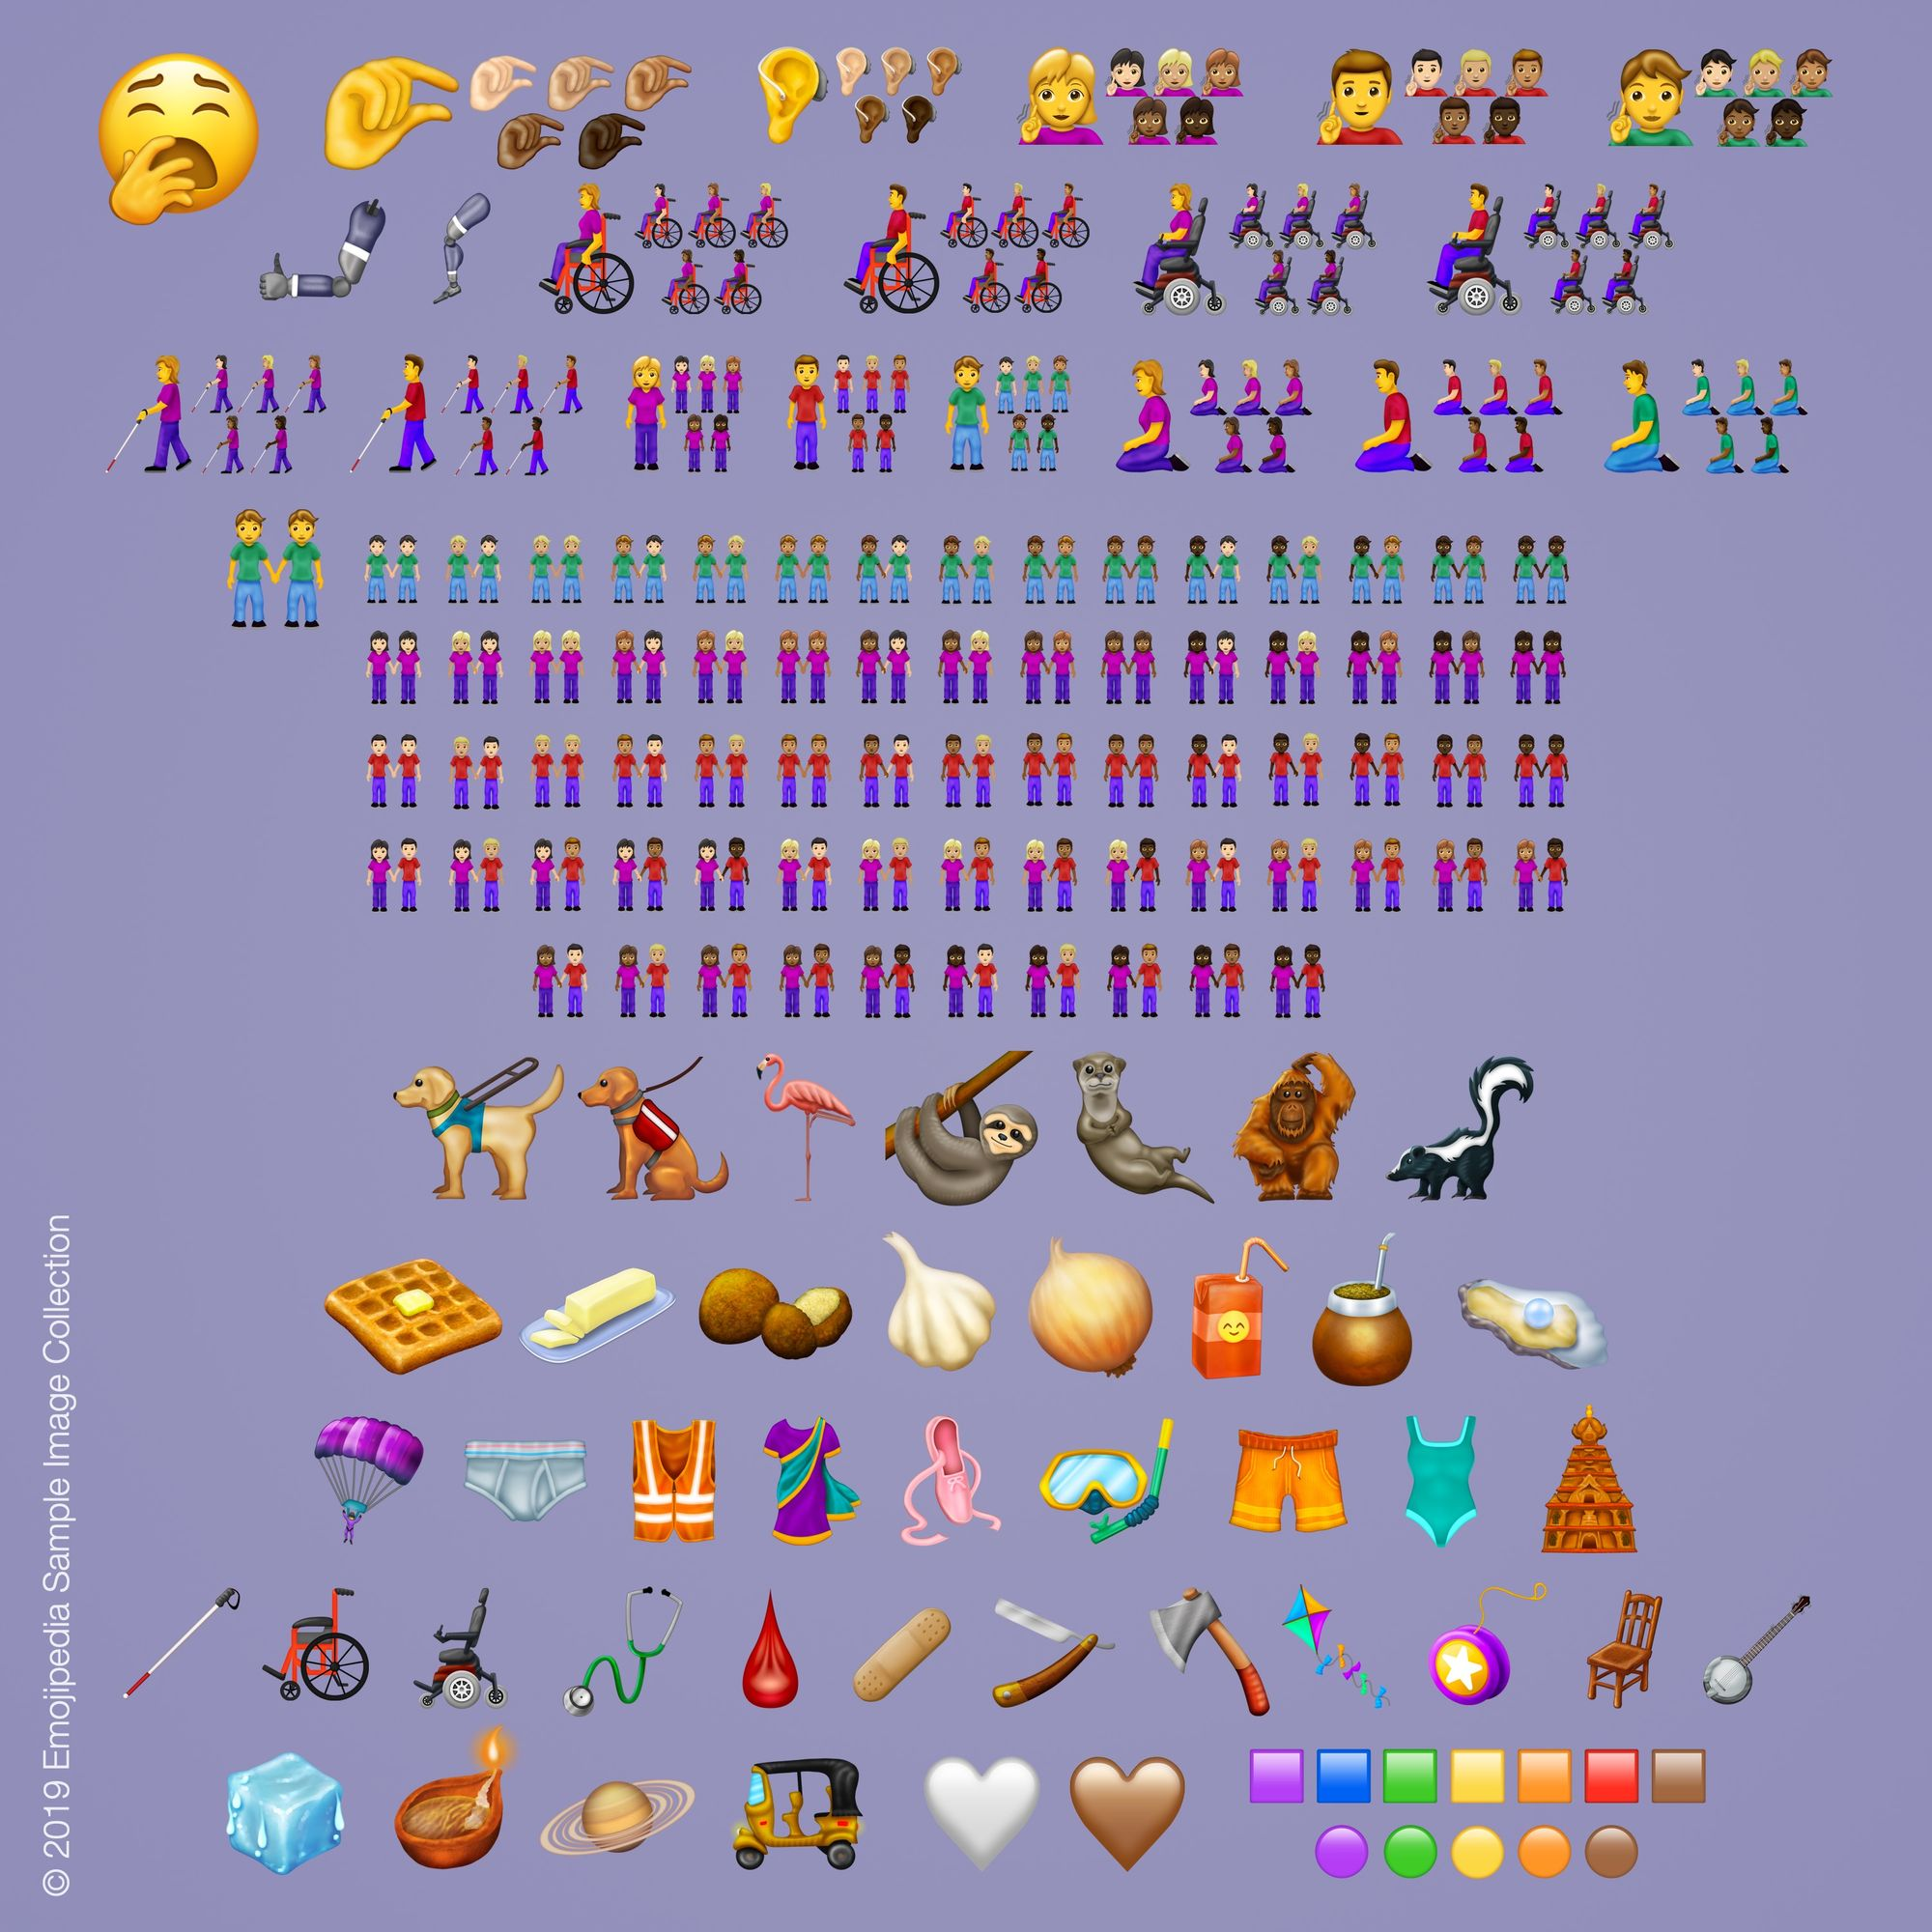 New Emojis 2019 230 New Emojis in Final List for 2019